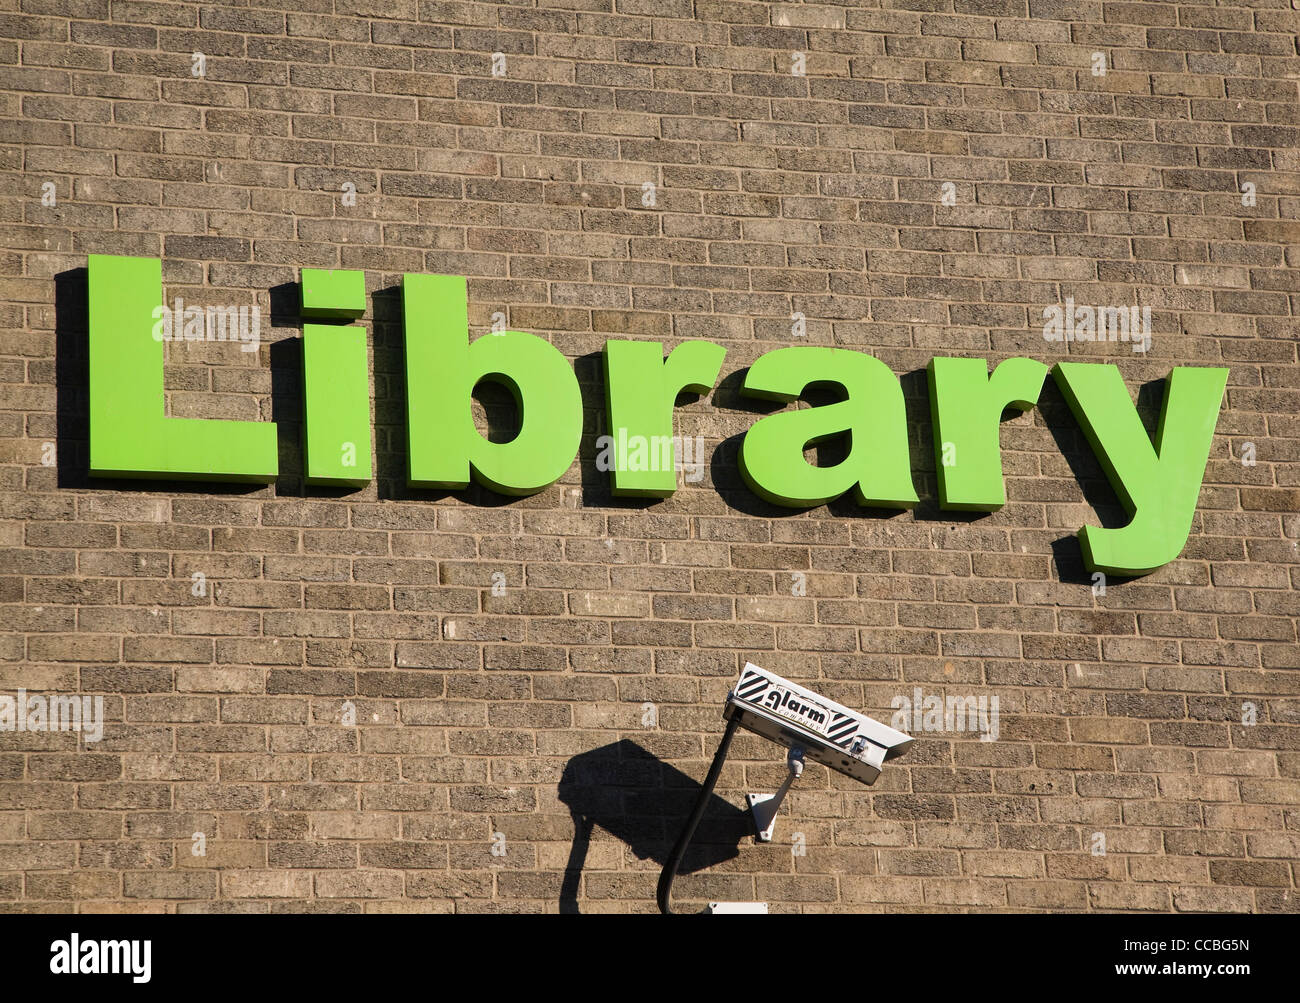 Library sign green letter brick wall CCTV camera - Stock Image